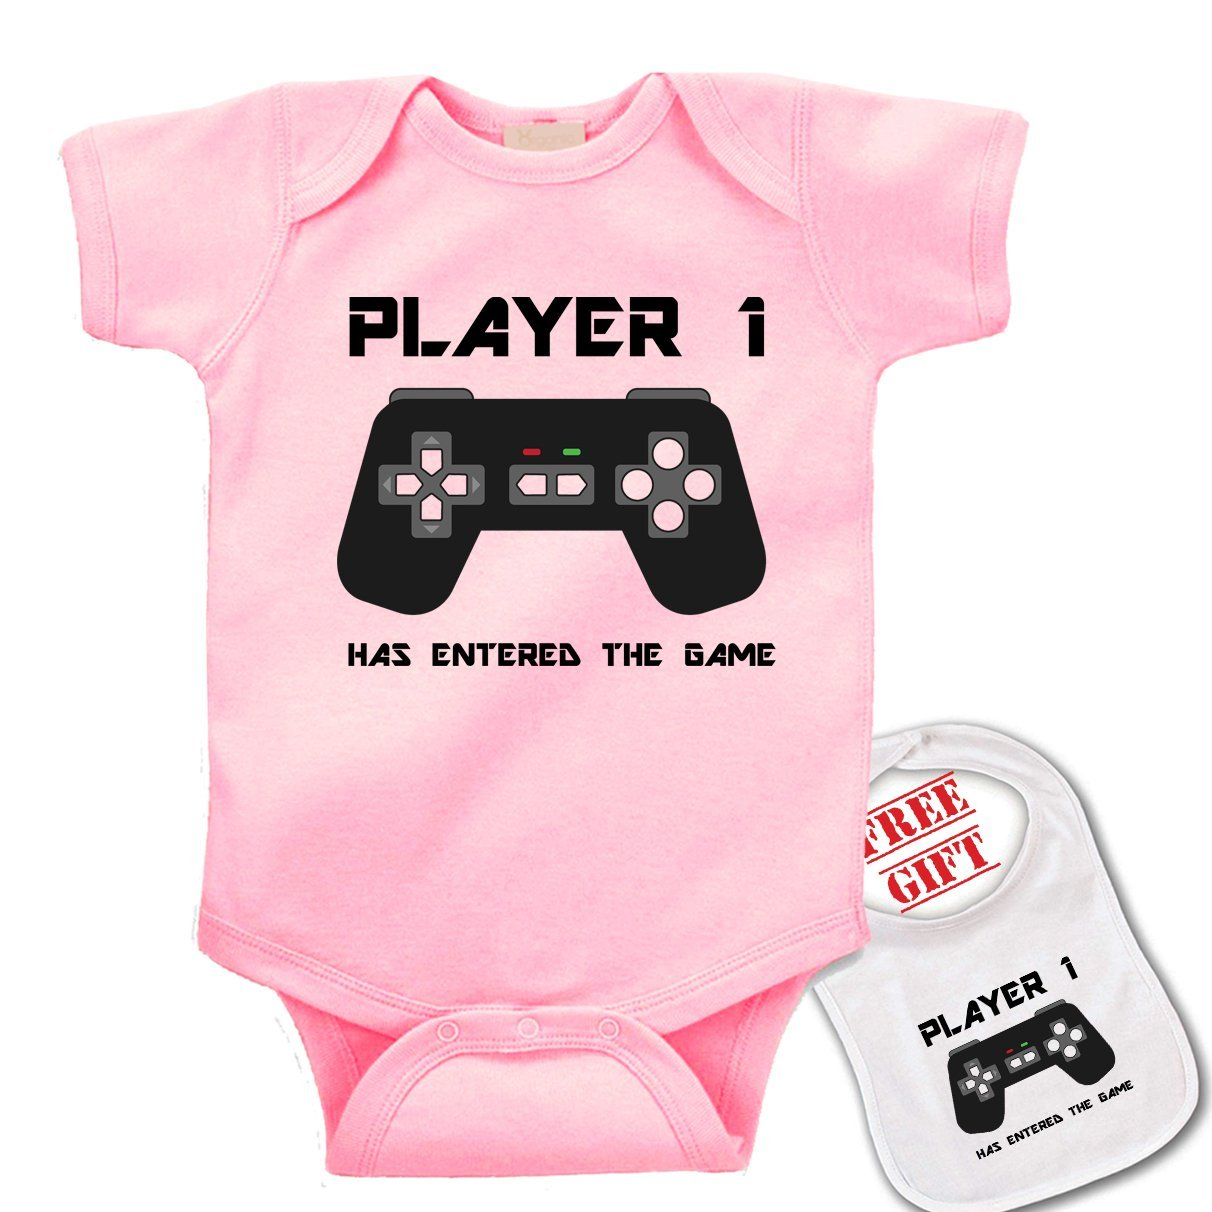 Player 1 has Entered The Game Cute Novelty Baby bodysuit onesie /& matching bib